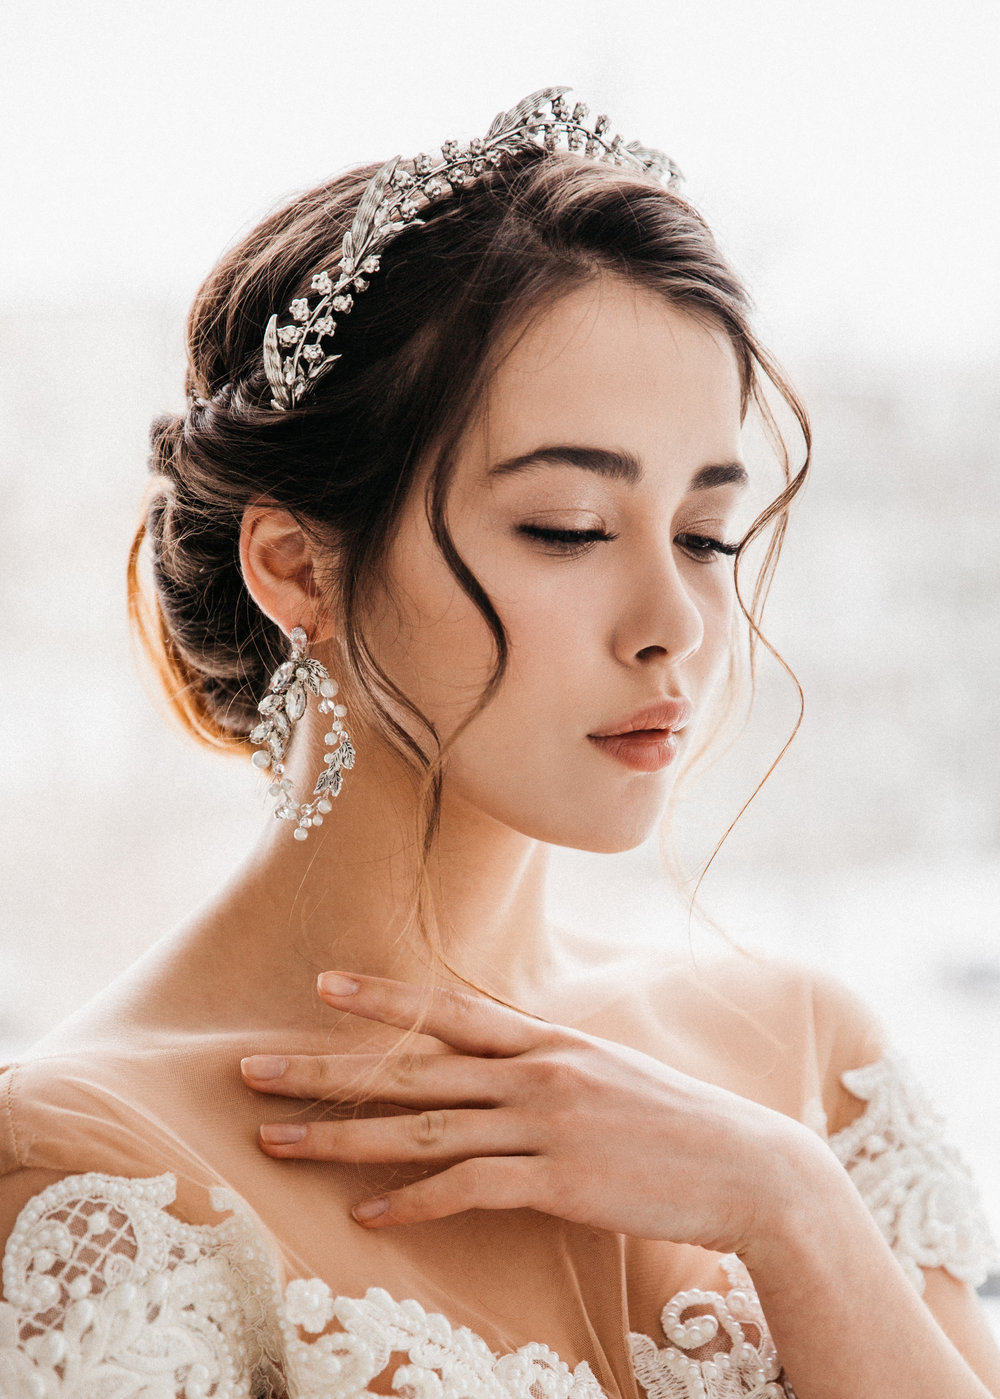 Find your perfect Wedding Hair Accessory - Handmade in SwitzerlandUnique DesignPossibility to Rush OrdersFree Shipping WorldwideCustomisable OrdersFast response on your questions